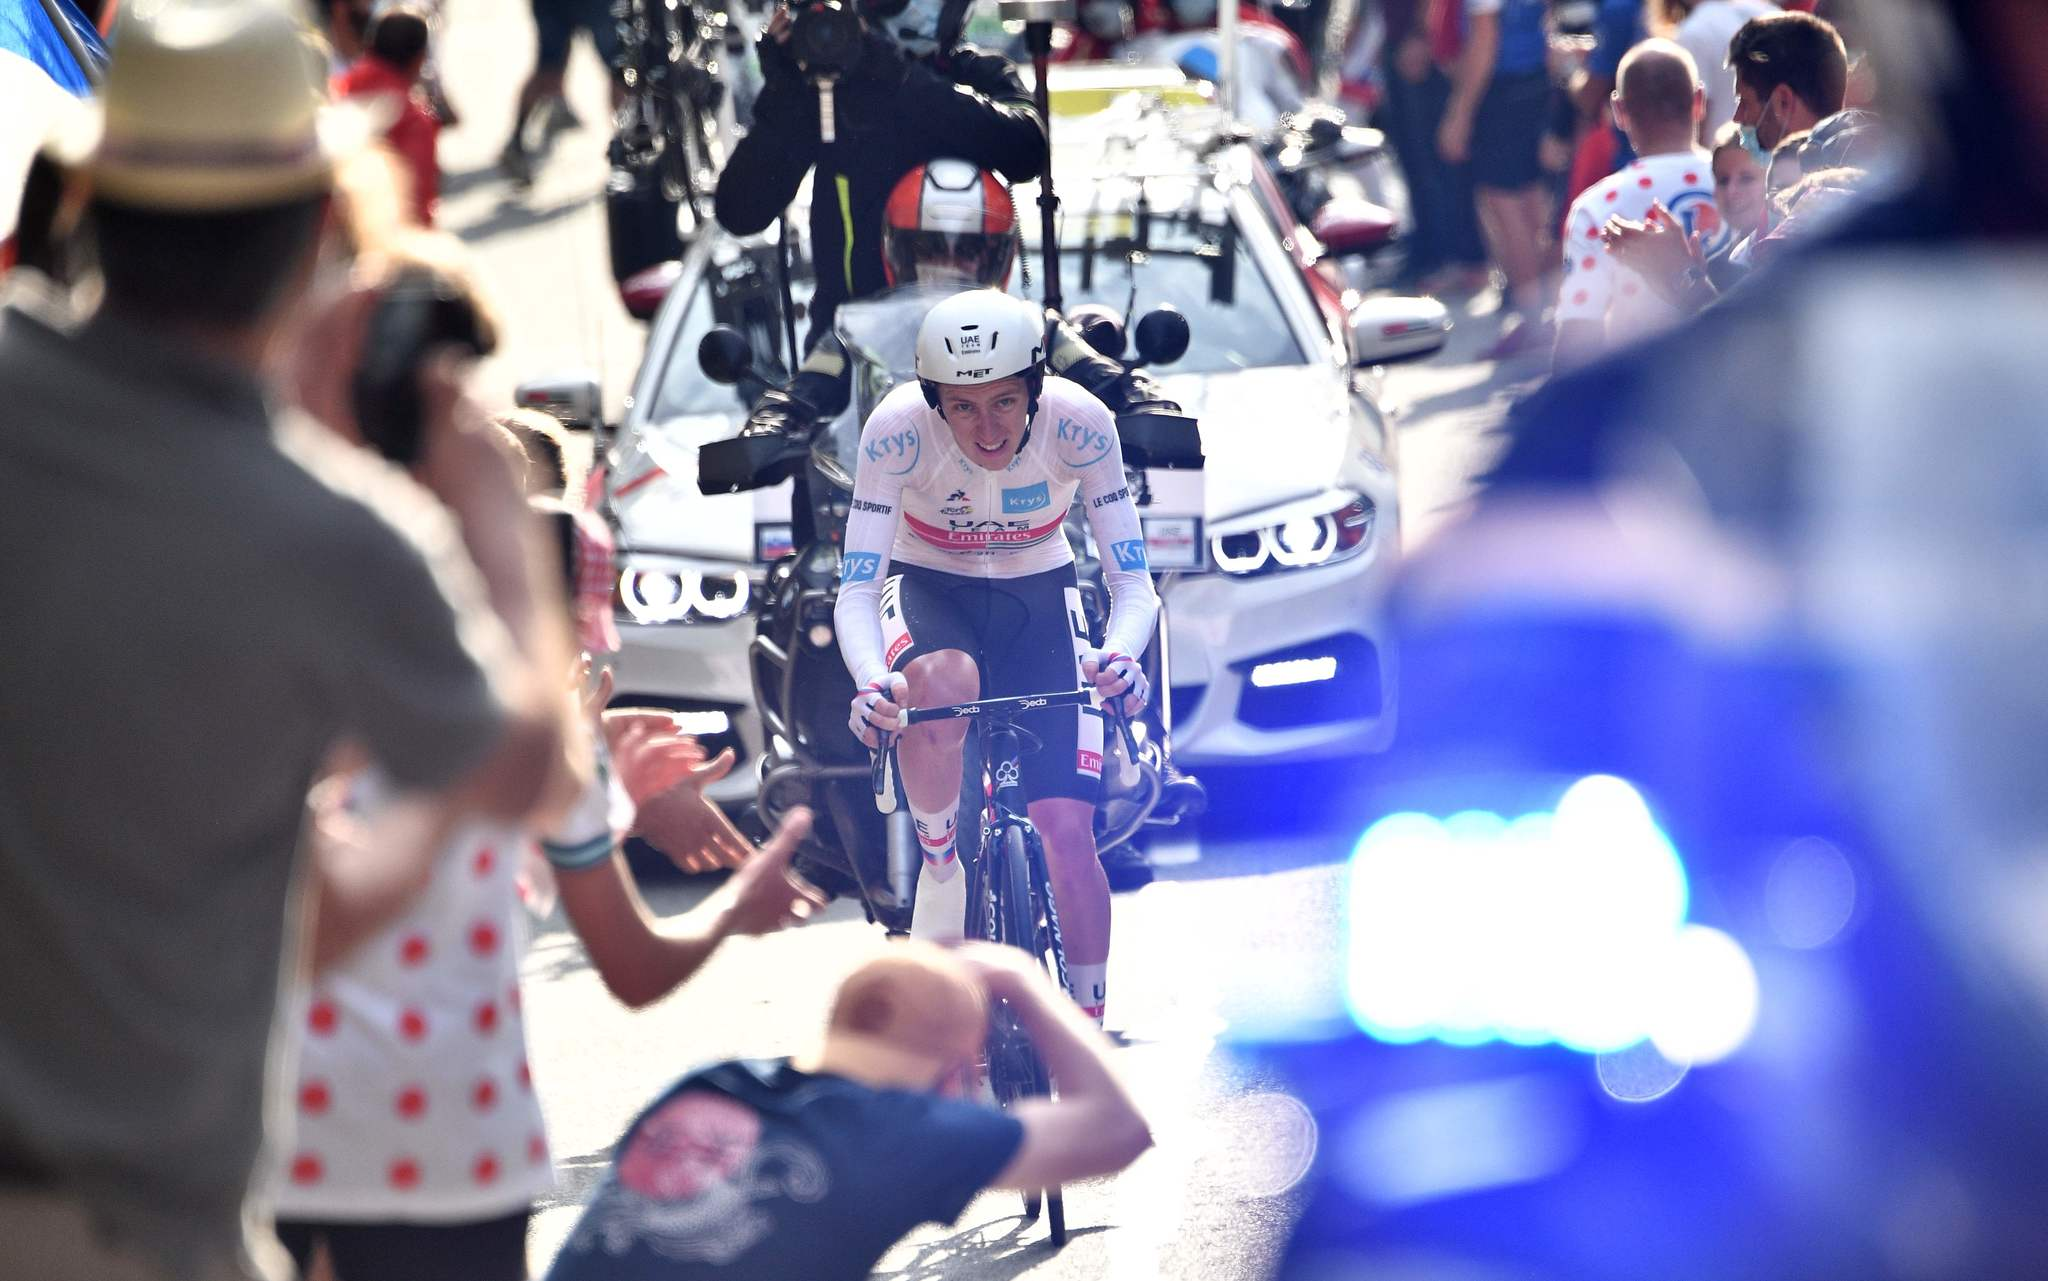 TOPSHOT - Team UAE Emirates rider Slovenias Tadej lt;HIT gt;Pogacar lt;/HIT gt; wearing the best youngs white jersey rides during the 20th stage of the 107th edition of the Tour de France cycling race, a time trial of 36 km between Lure and La Planche des Belles Filles, on September 19, 2020. (Photo by Anne-Christine POUJOULAT / AFP)